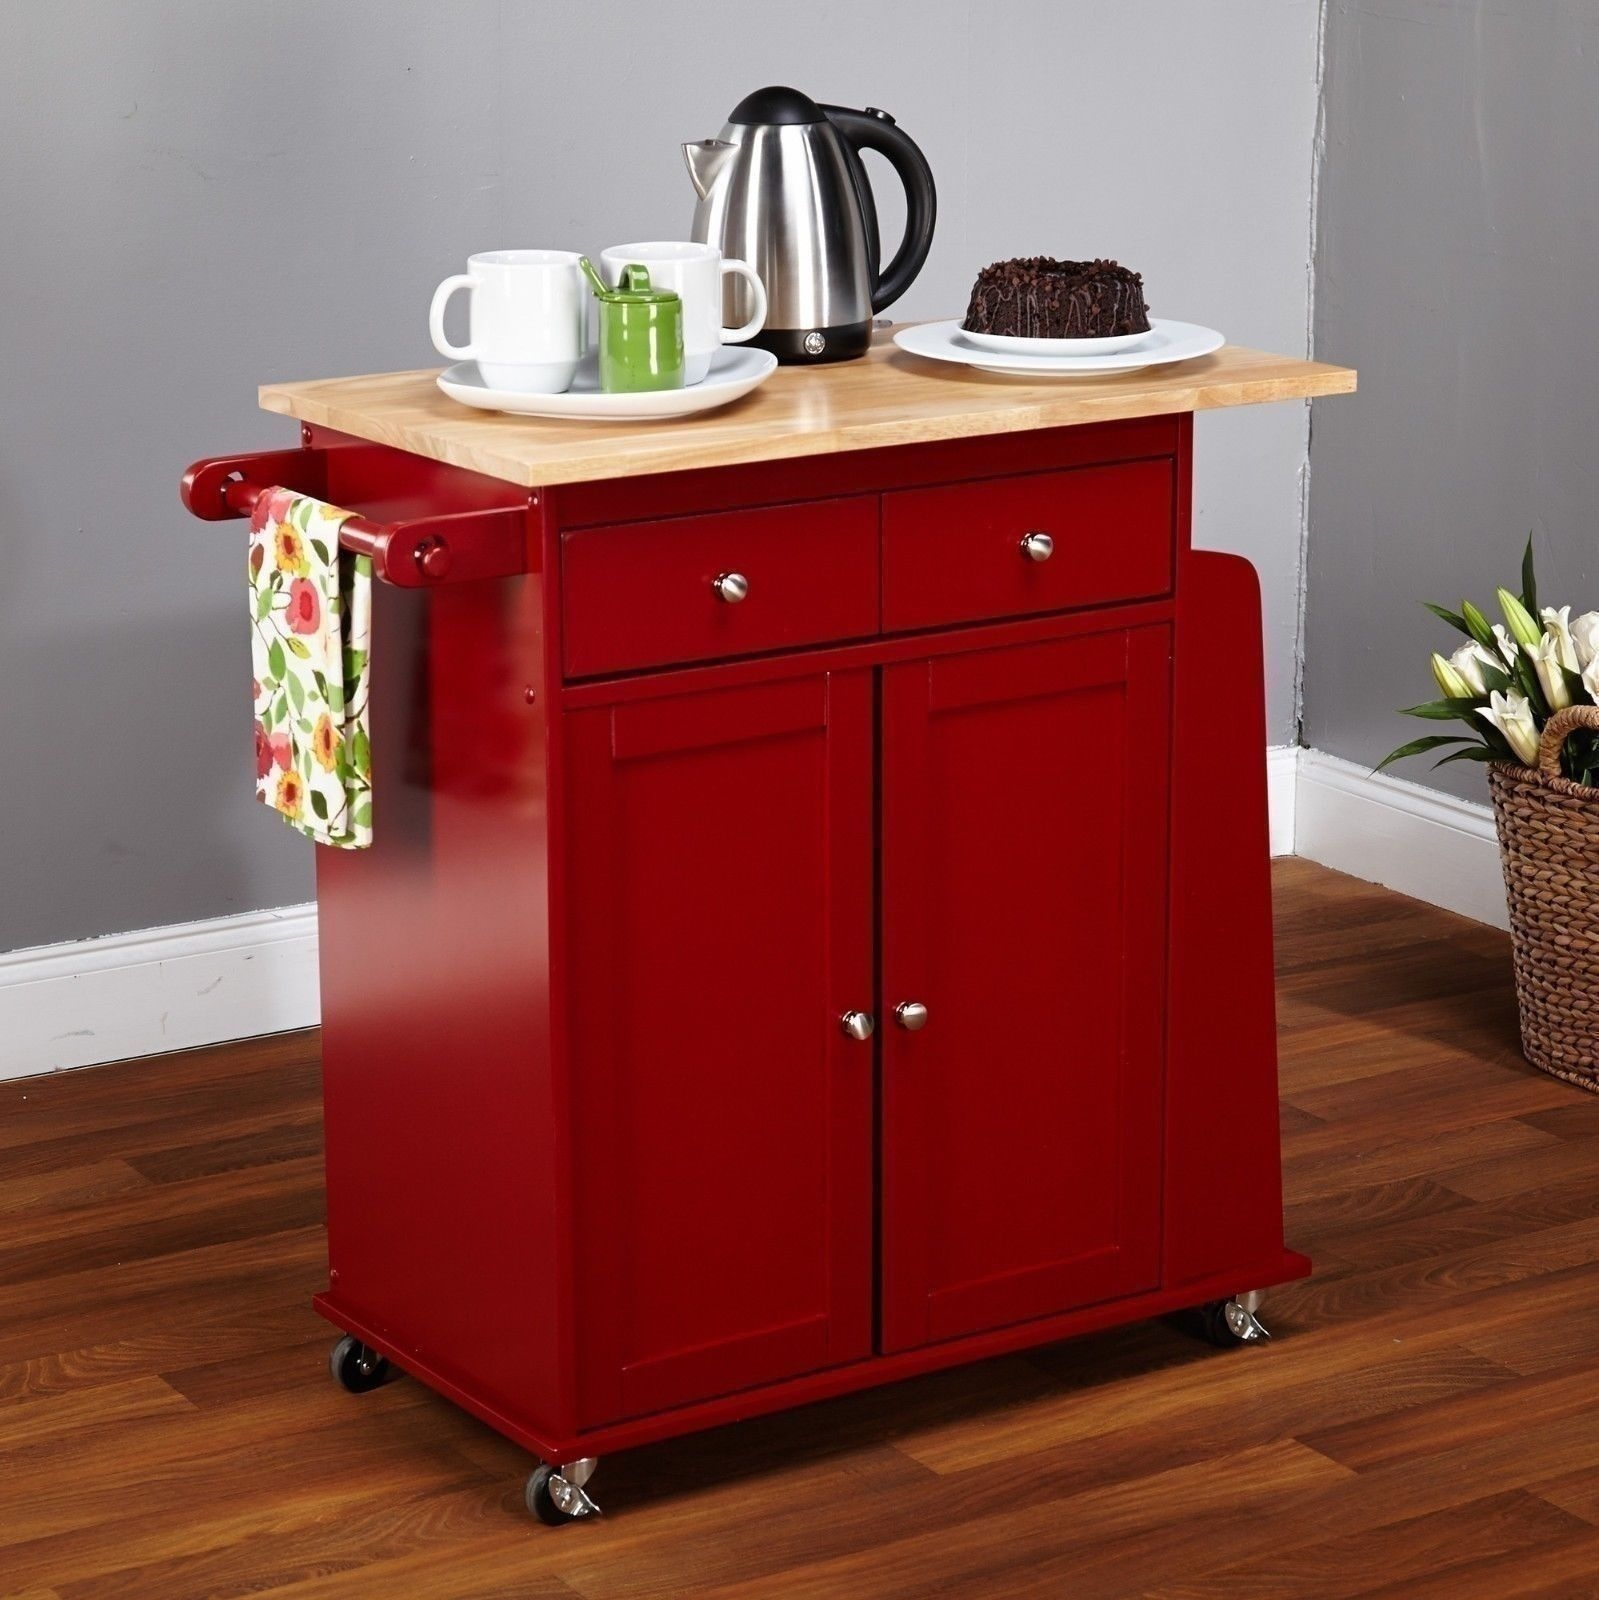 Unique Rolling Kitchen Cabinet: NEW Kitchen Island Red Utility Cart Rolling Cabinet